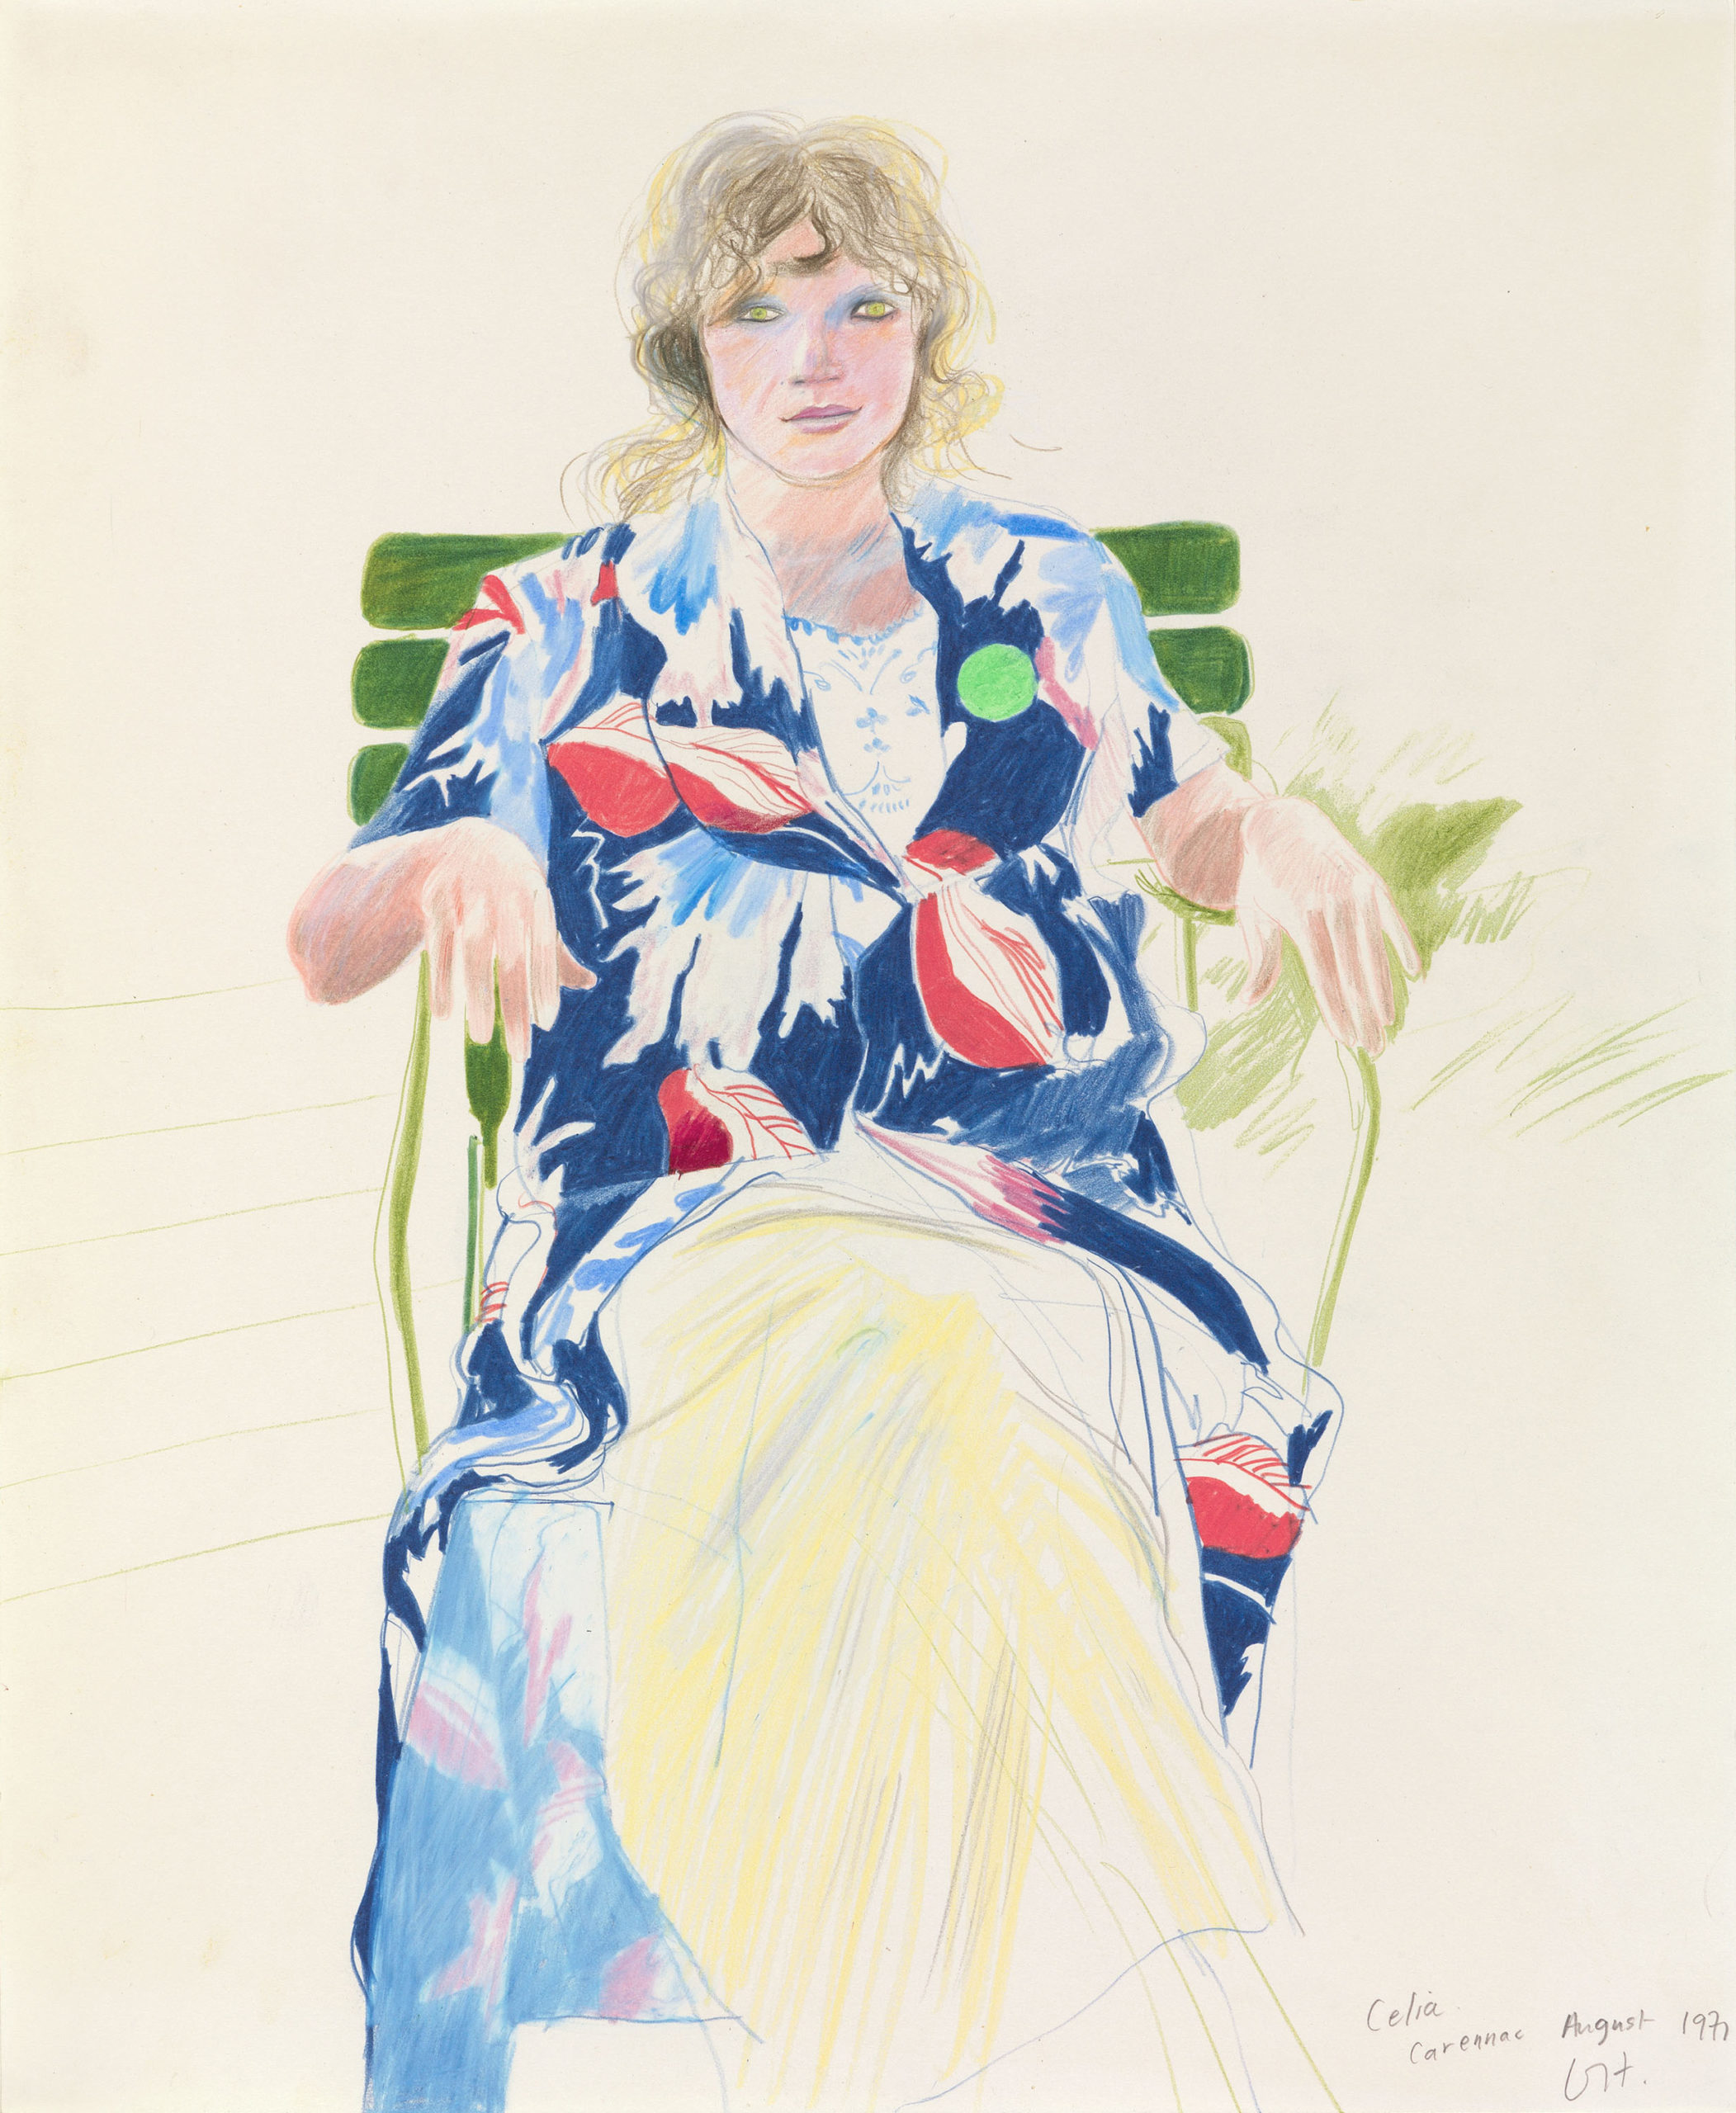 David Hockney - Celia, Carennac, August 1971